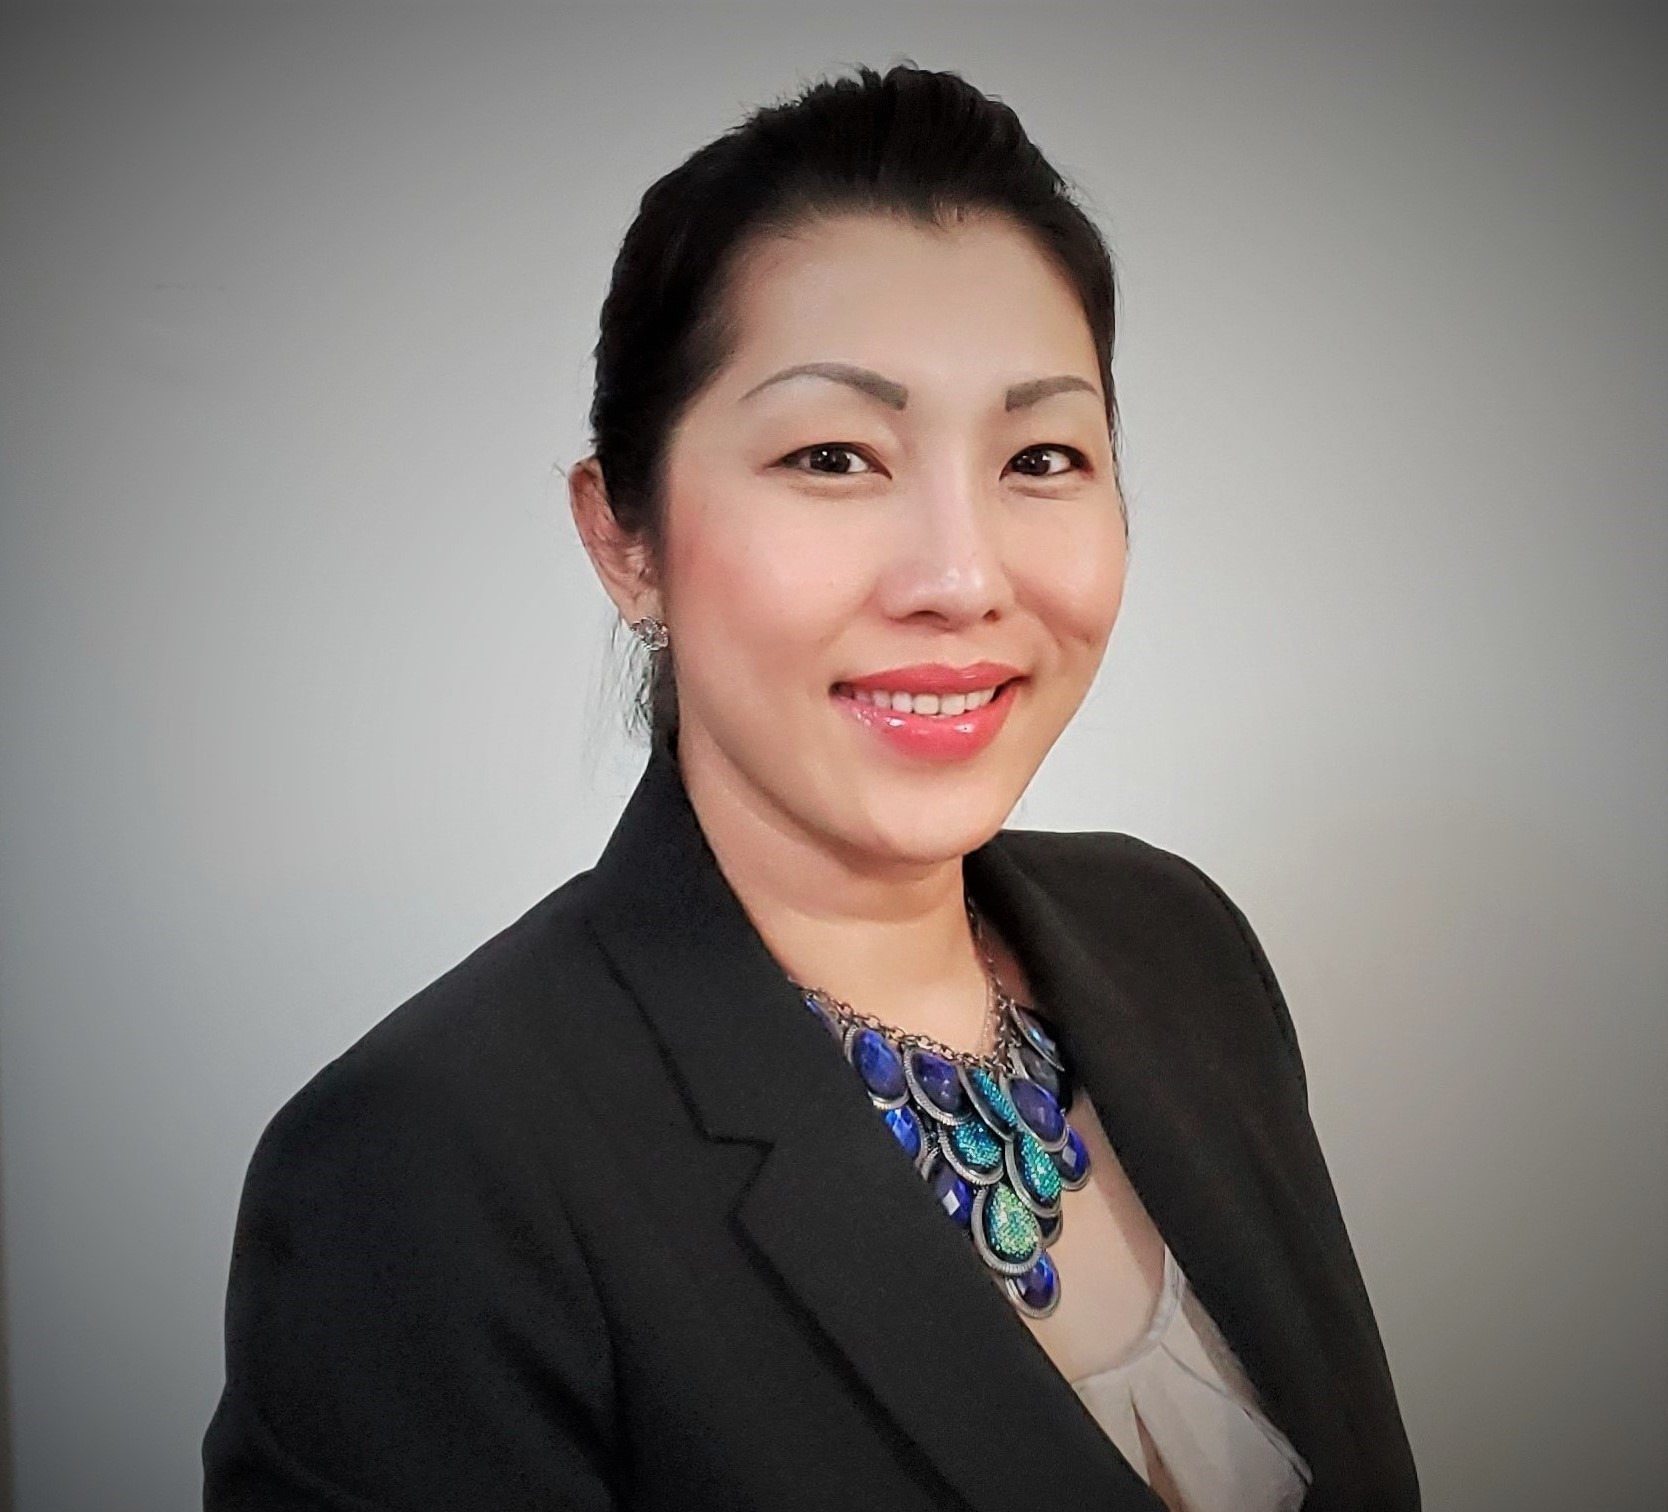 Hanh Nguyen | Health and Life Insurance Agent | Hurst, TX 76053